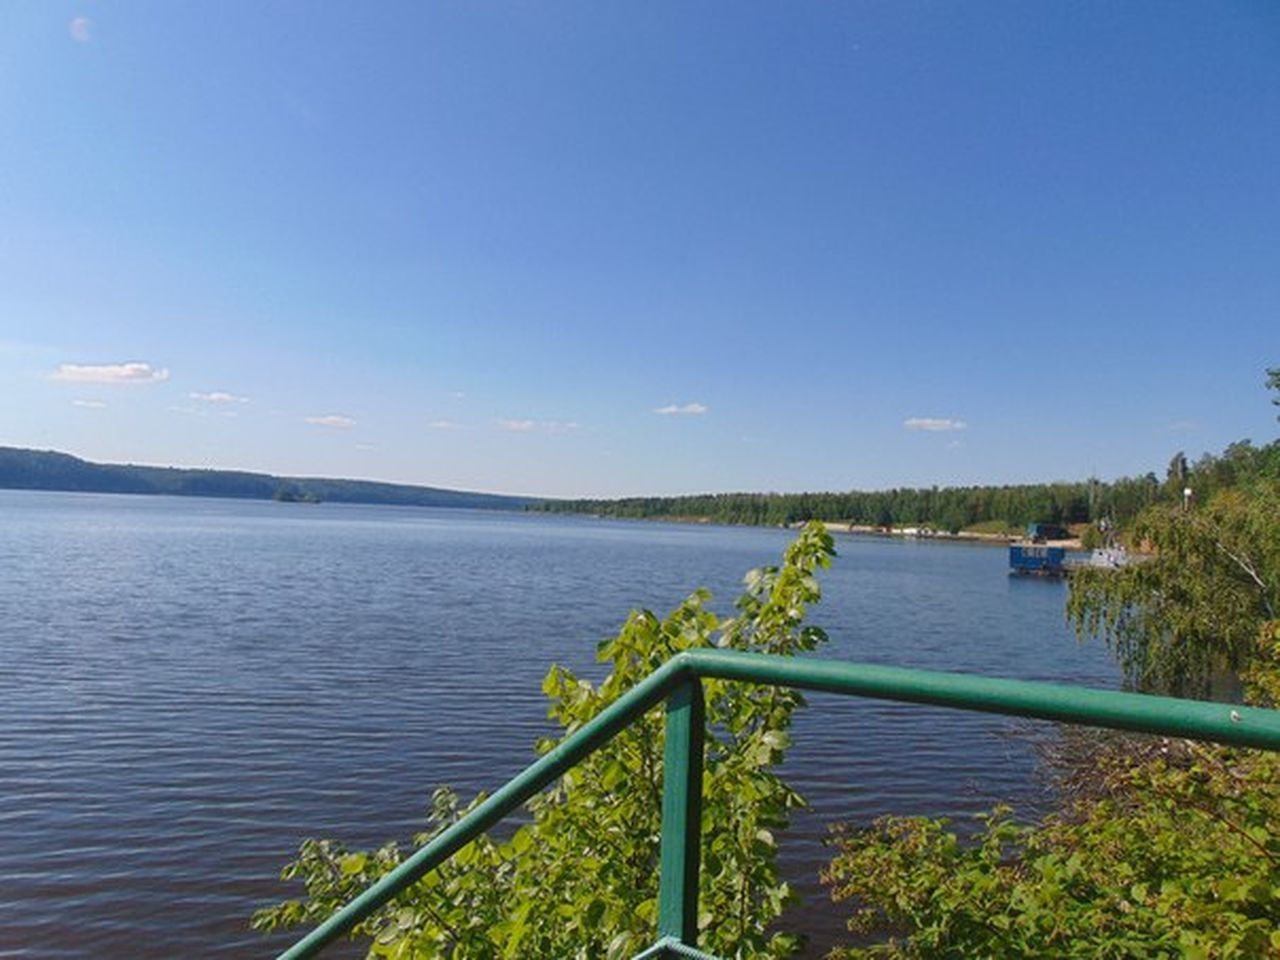 outdoors, blue, water, day, sky, nature, clear sky, no people, plant, lake, scenics, beauty in nature, tree